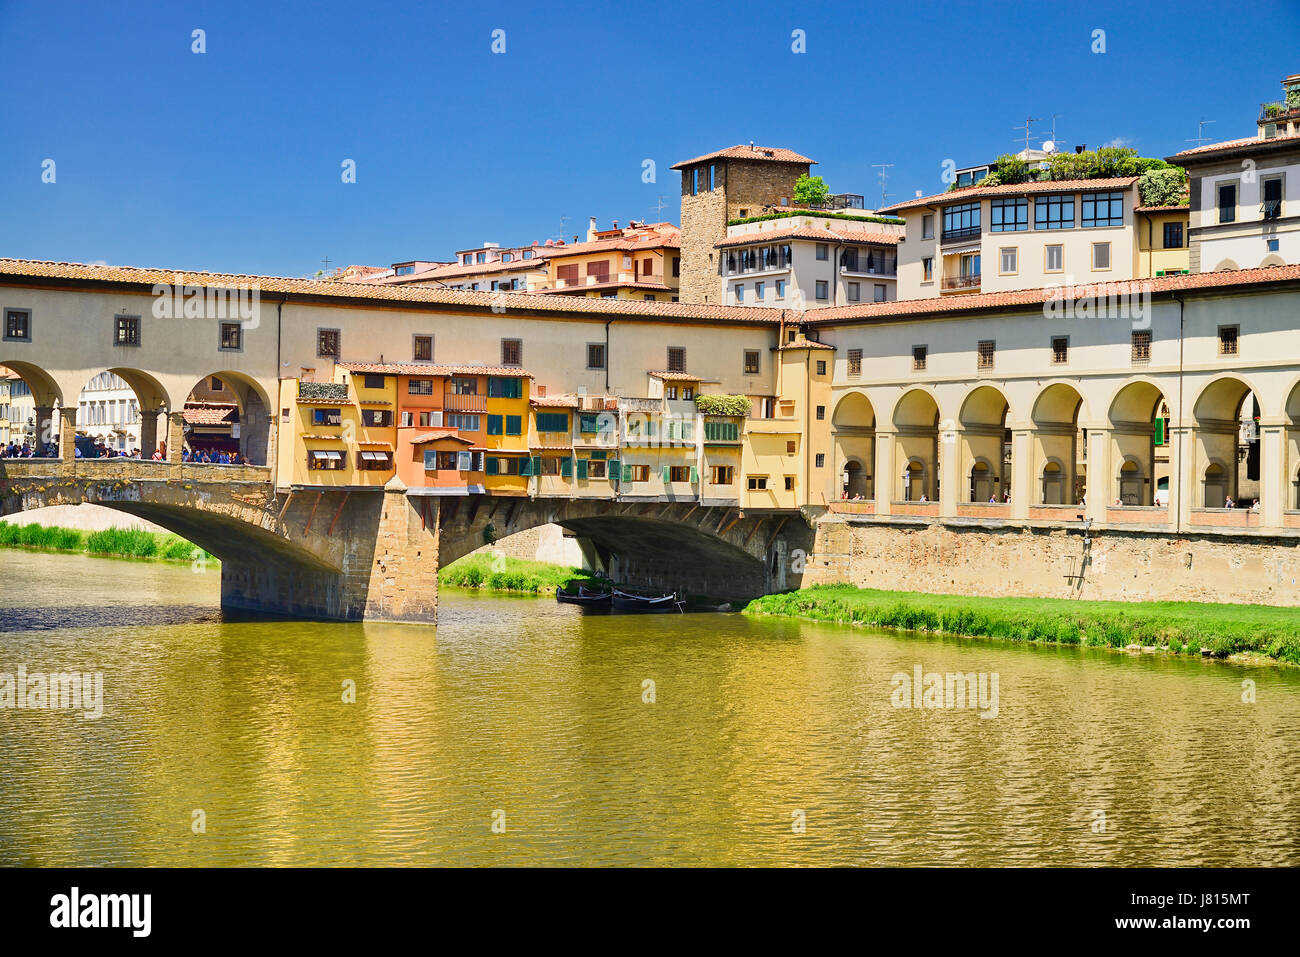 Italy, Tuscany, Florence, River Arno with Ponte Vecchio. - Stock Image